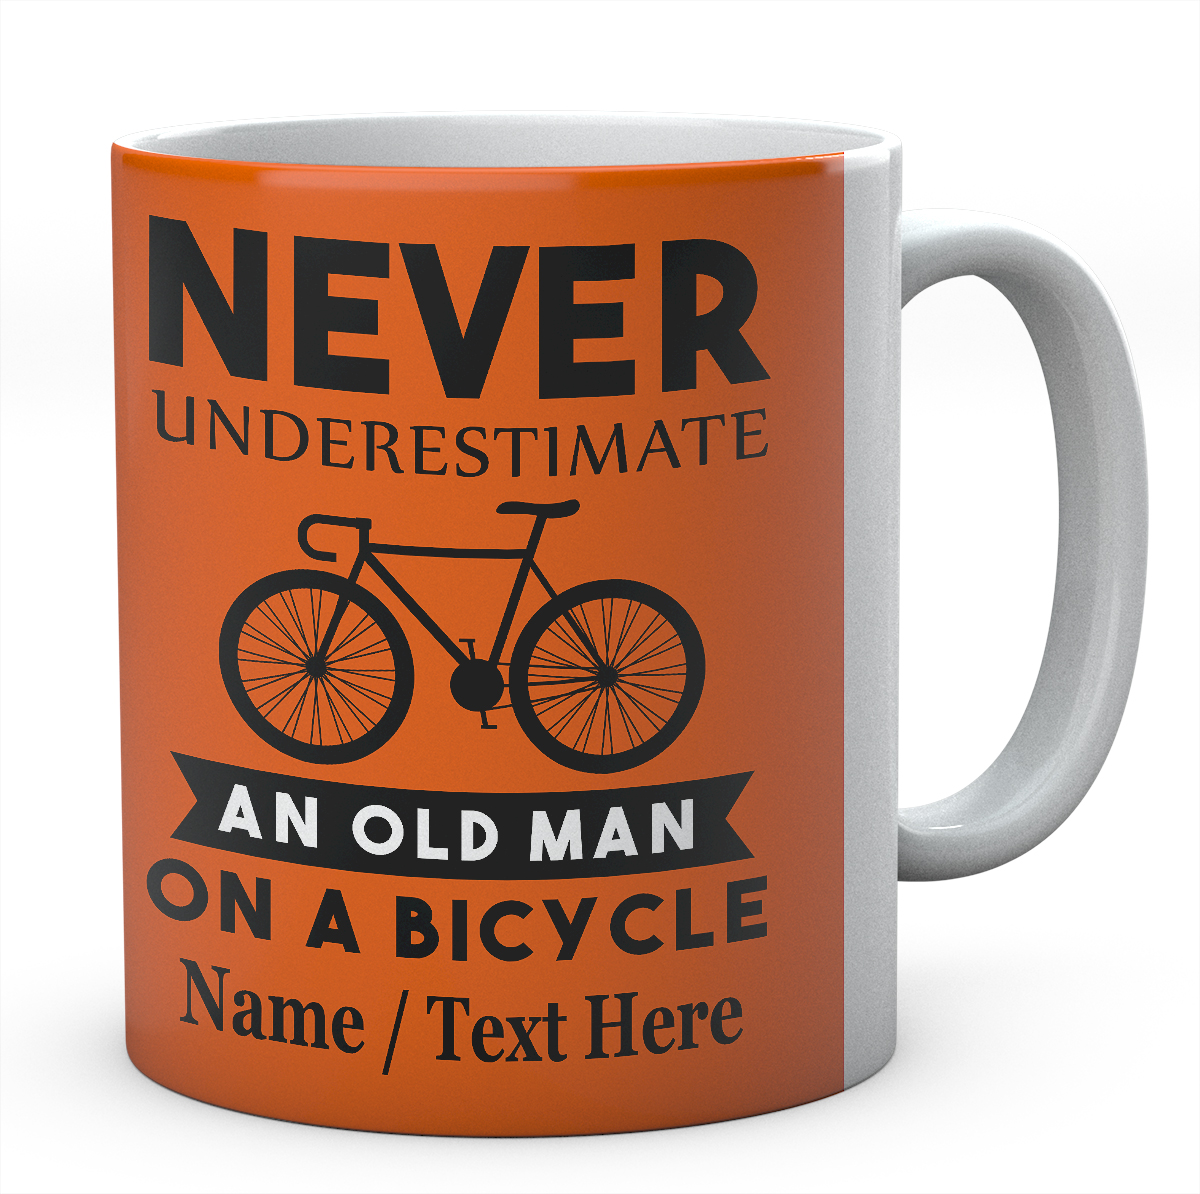 Never Underestimate an Old Man On A Bicycle - Cycling Mug